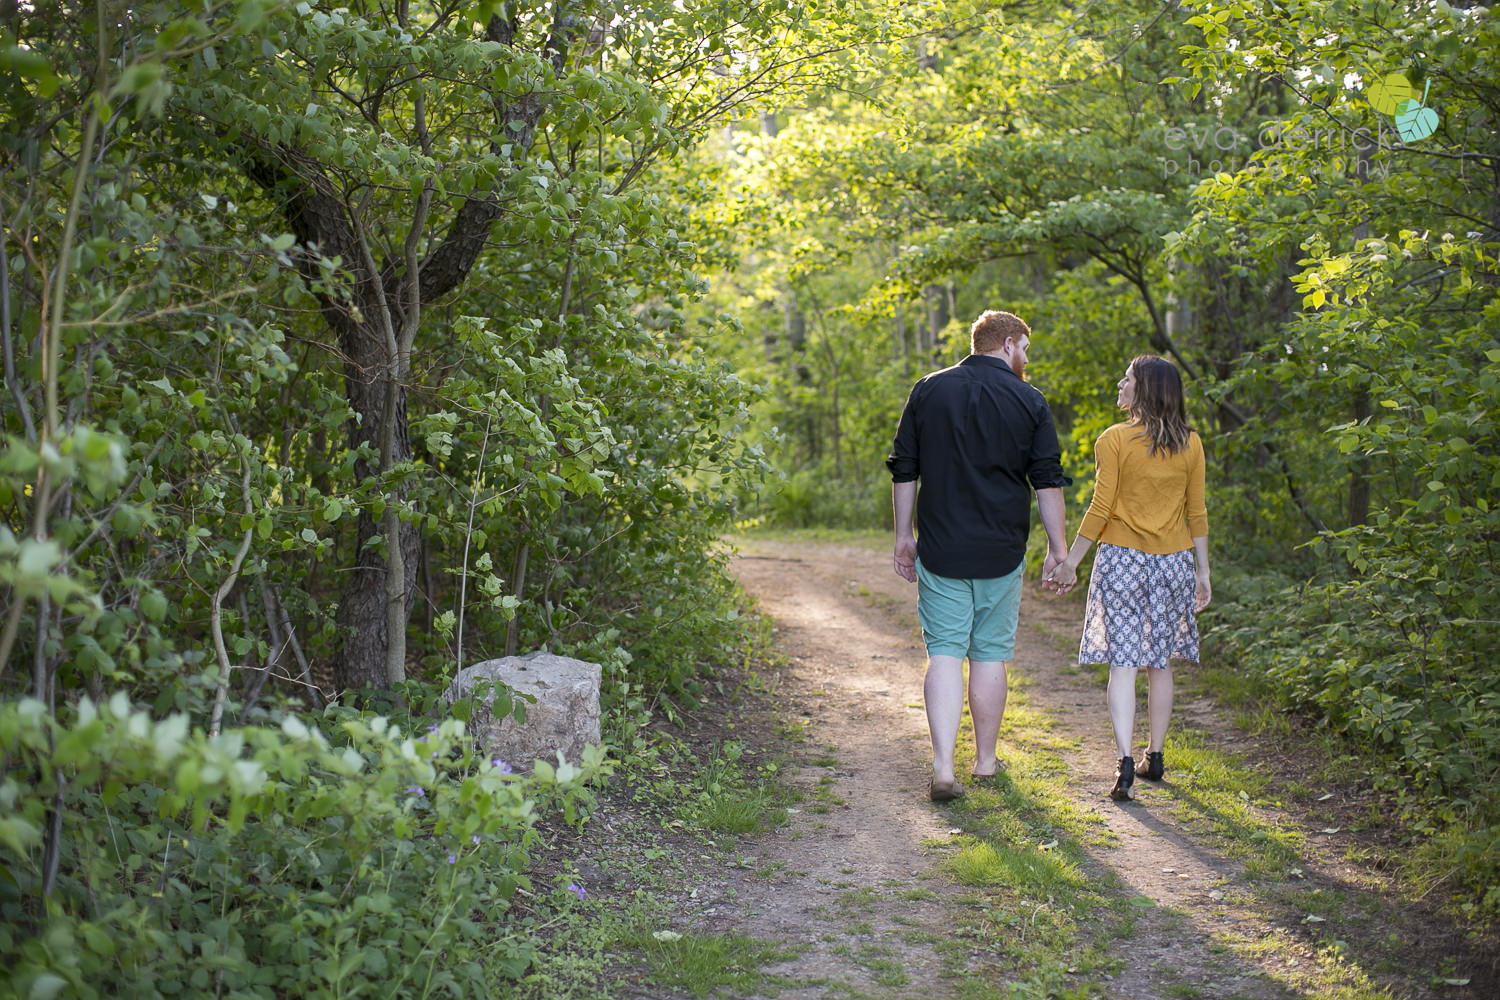 Millgrove-Photographer-Millgrove-Engagement-Session-photography-by-Eva-Derrick-Photography-007.JPG